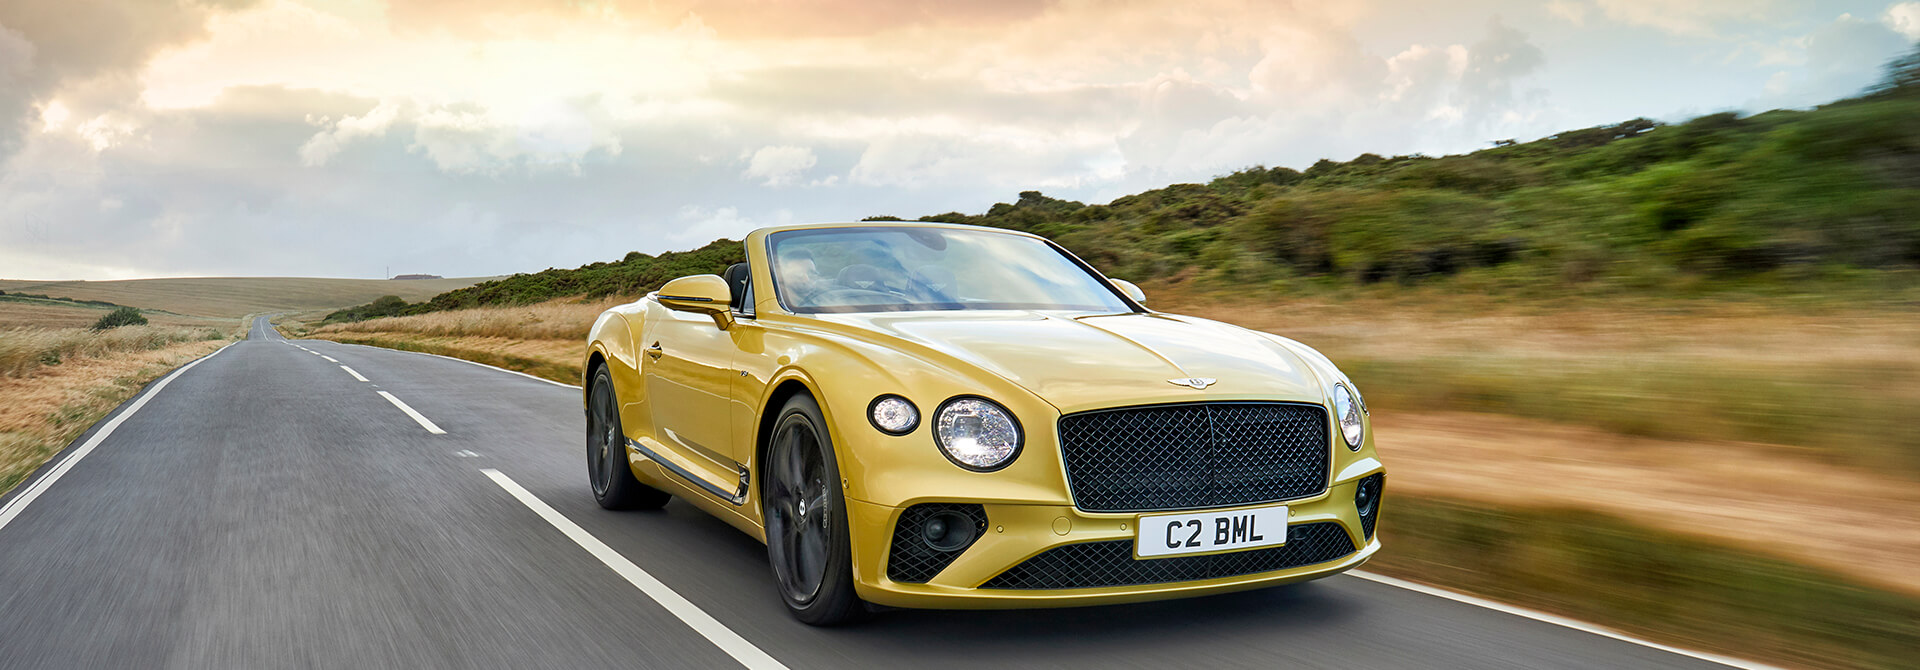 The Bentley Continental Gt V8 Convertible Bentley Motors